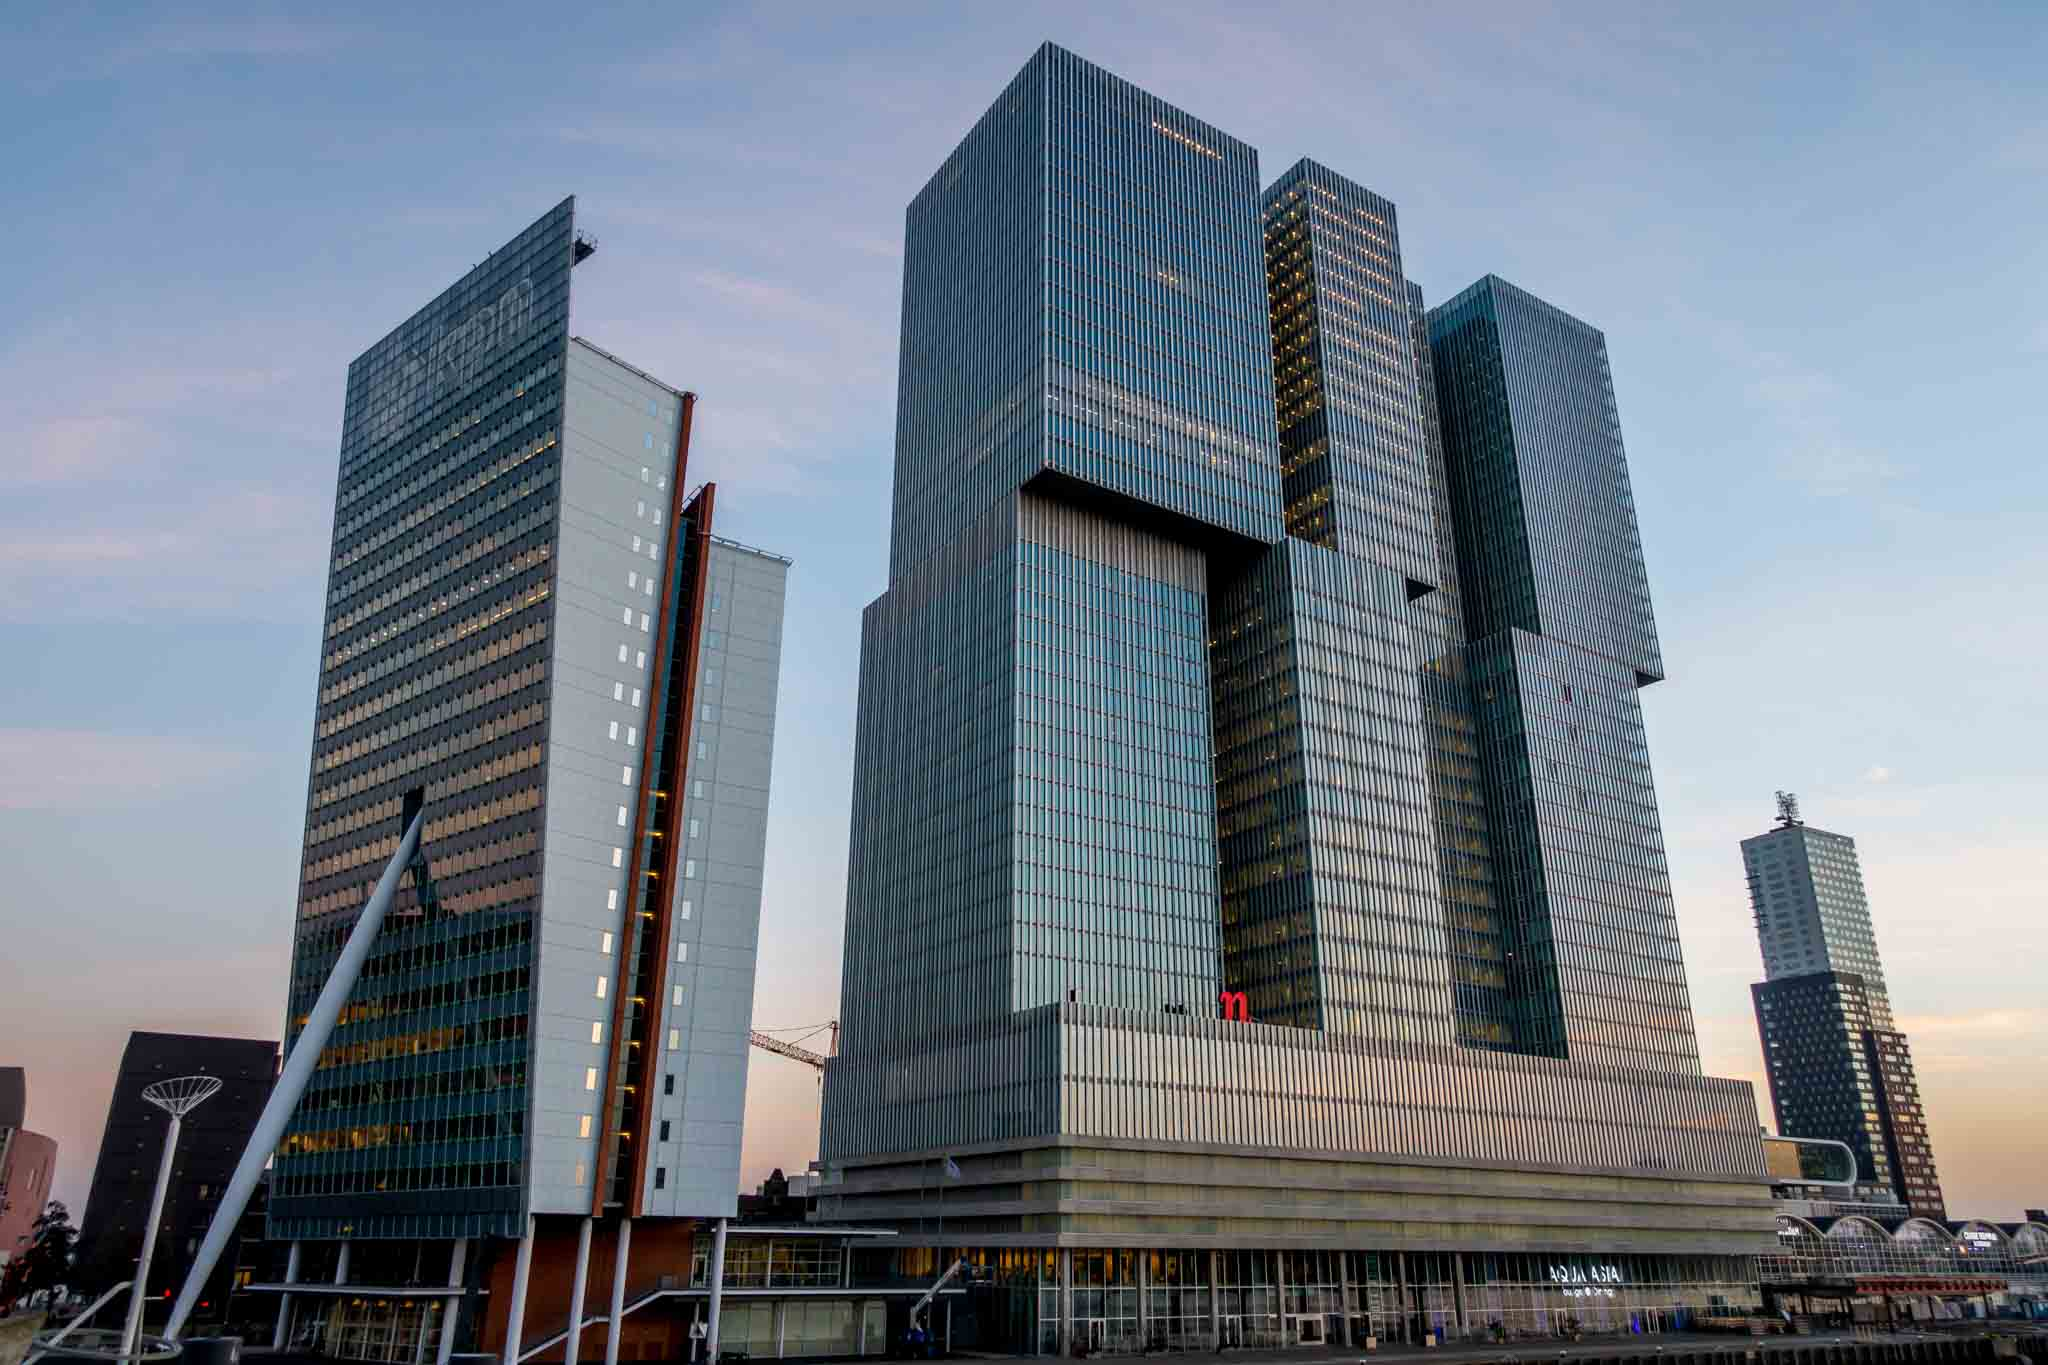 the eclectic enthralling architecture of rotterdam